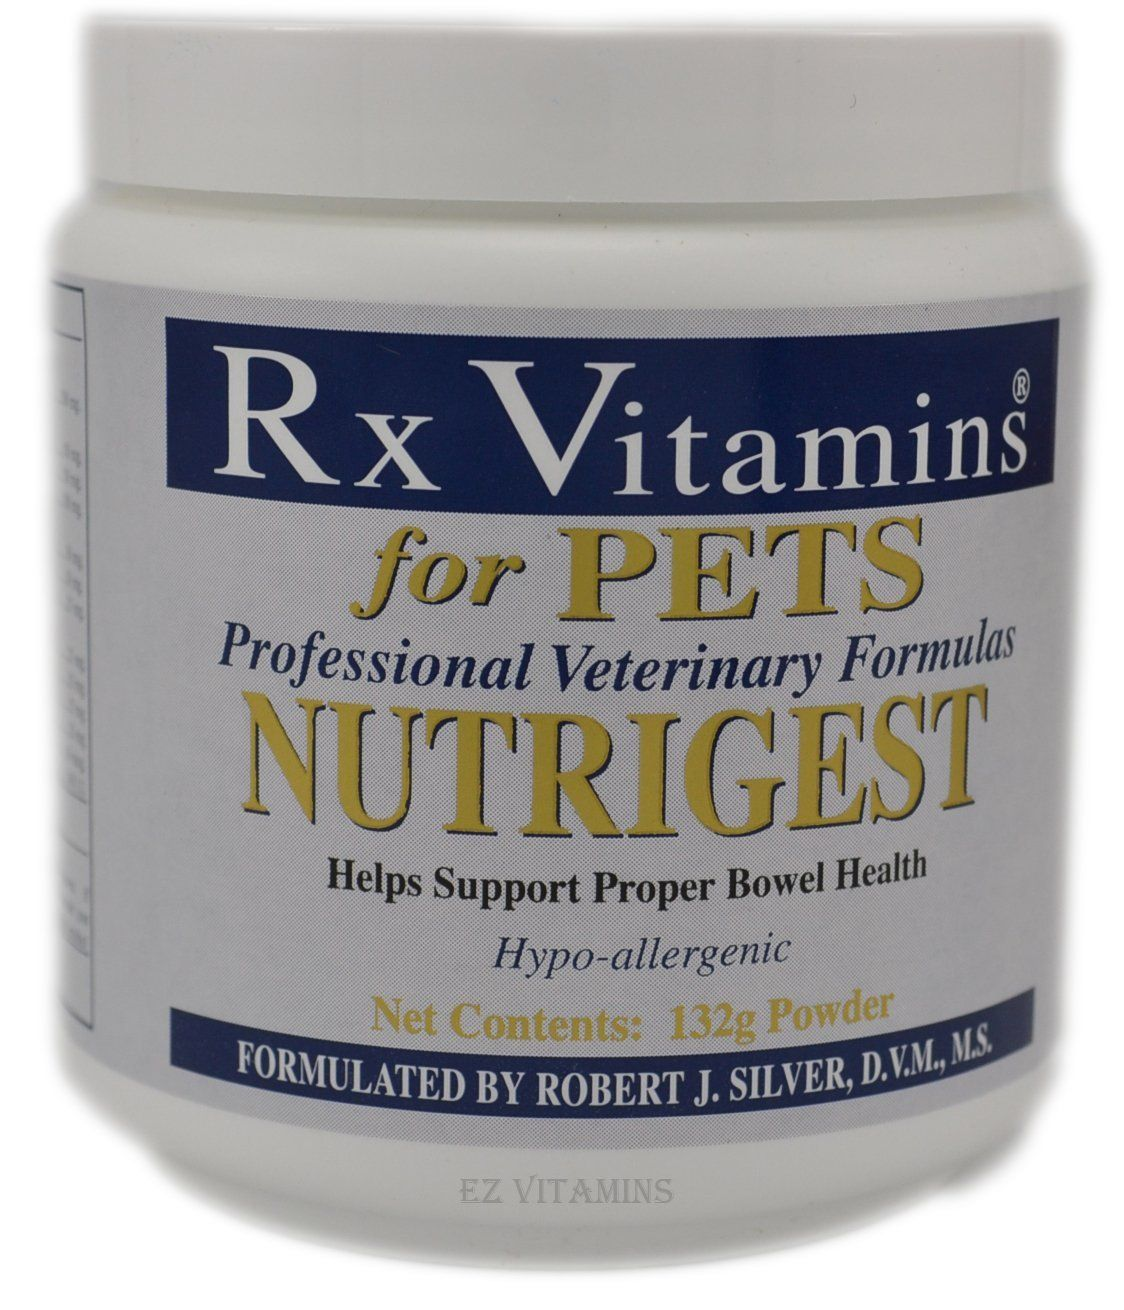 Rx Vitamins 1 Can Nutrigest for Dogs and Cats Powder, 132g